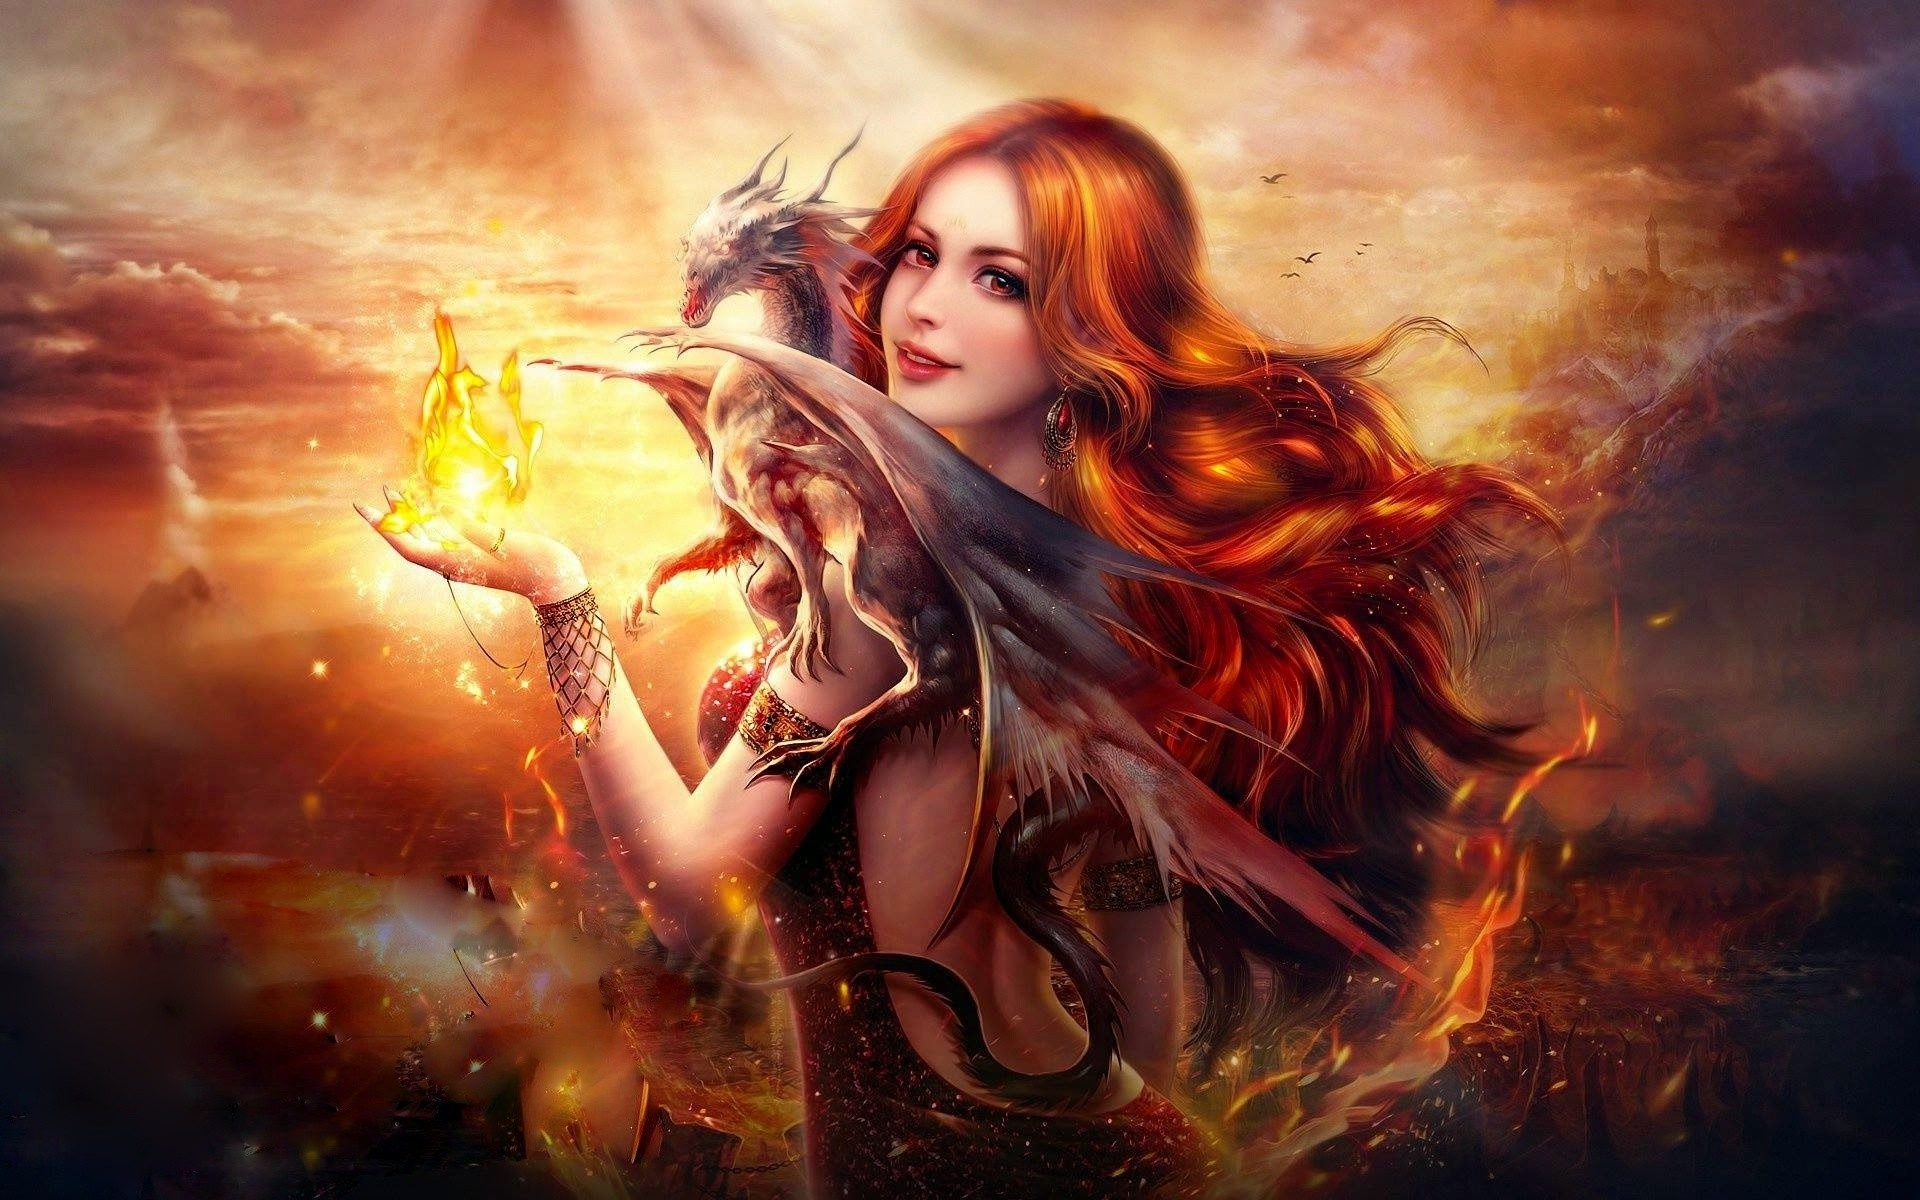 Dragon Fire Fantasy Girl HD wallpaper for your PC, Mac or Mobile device